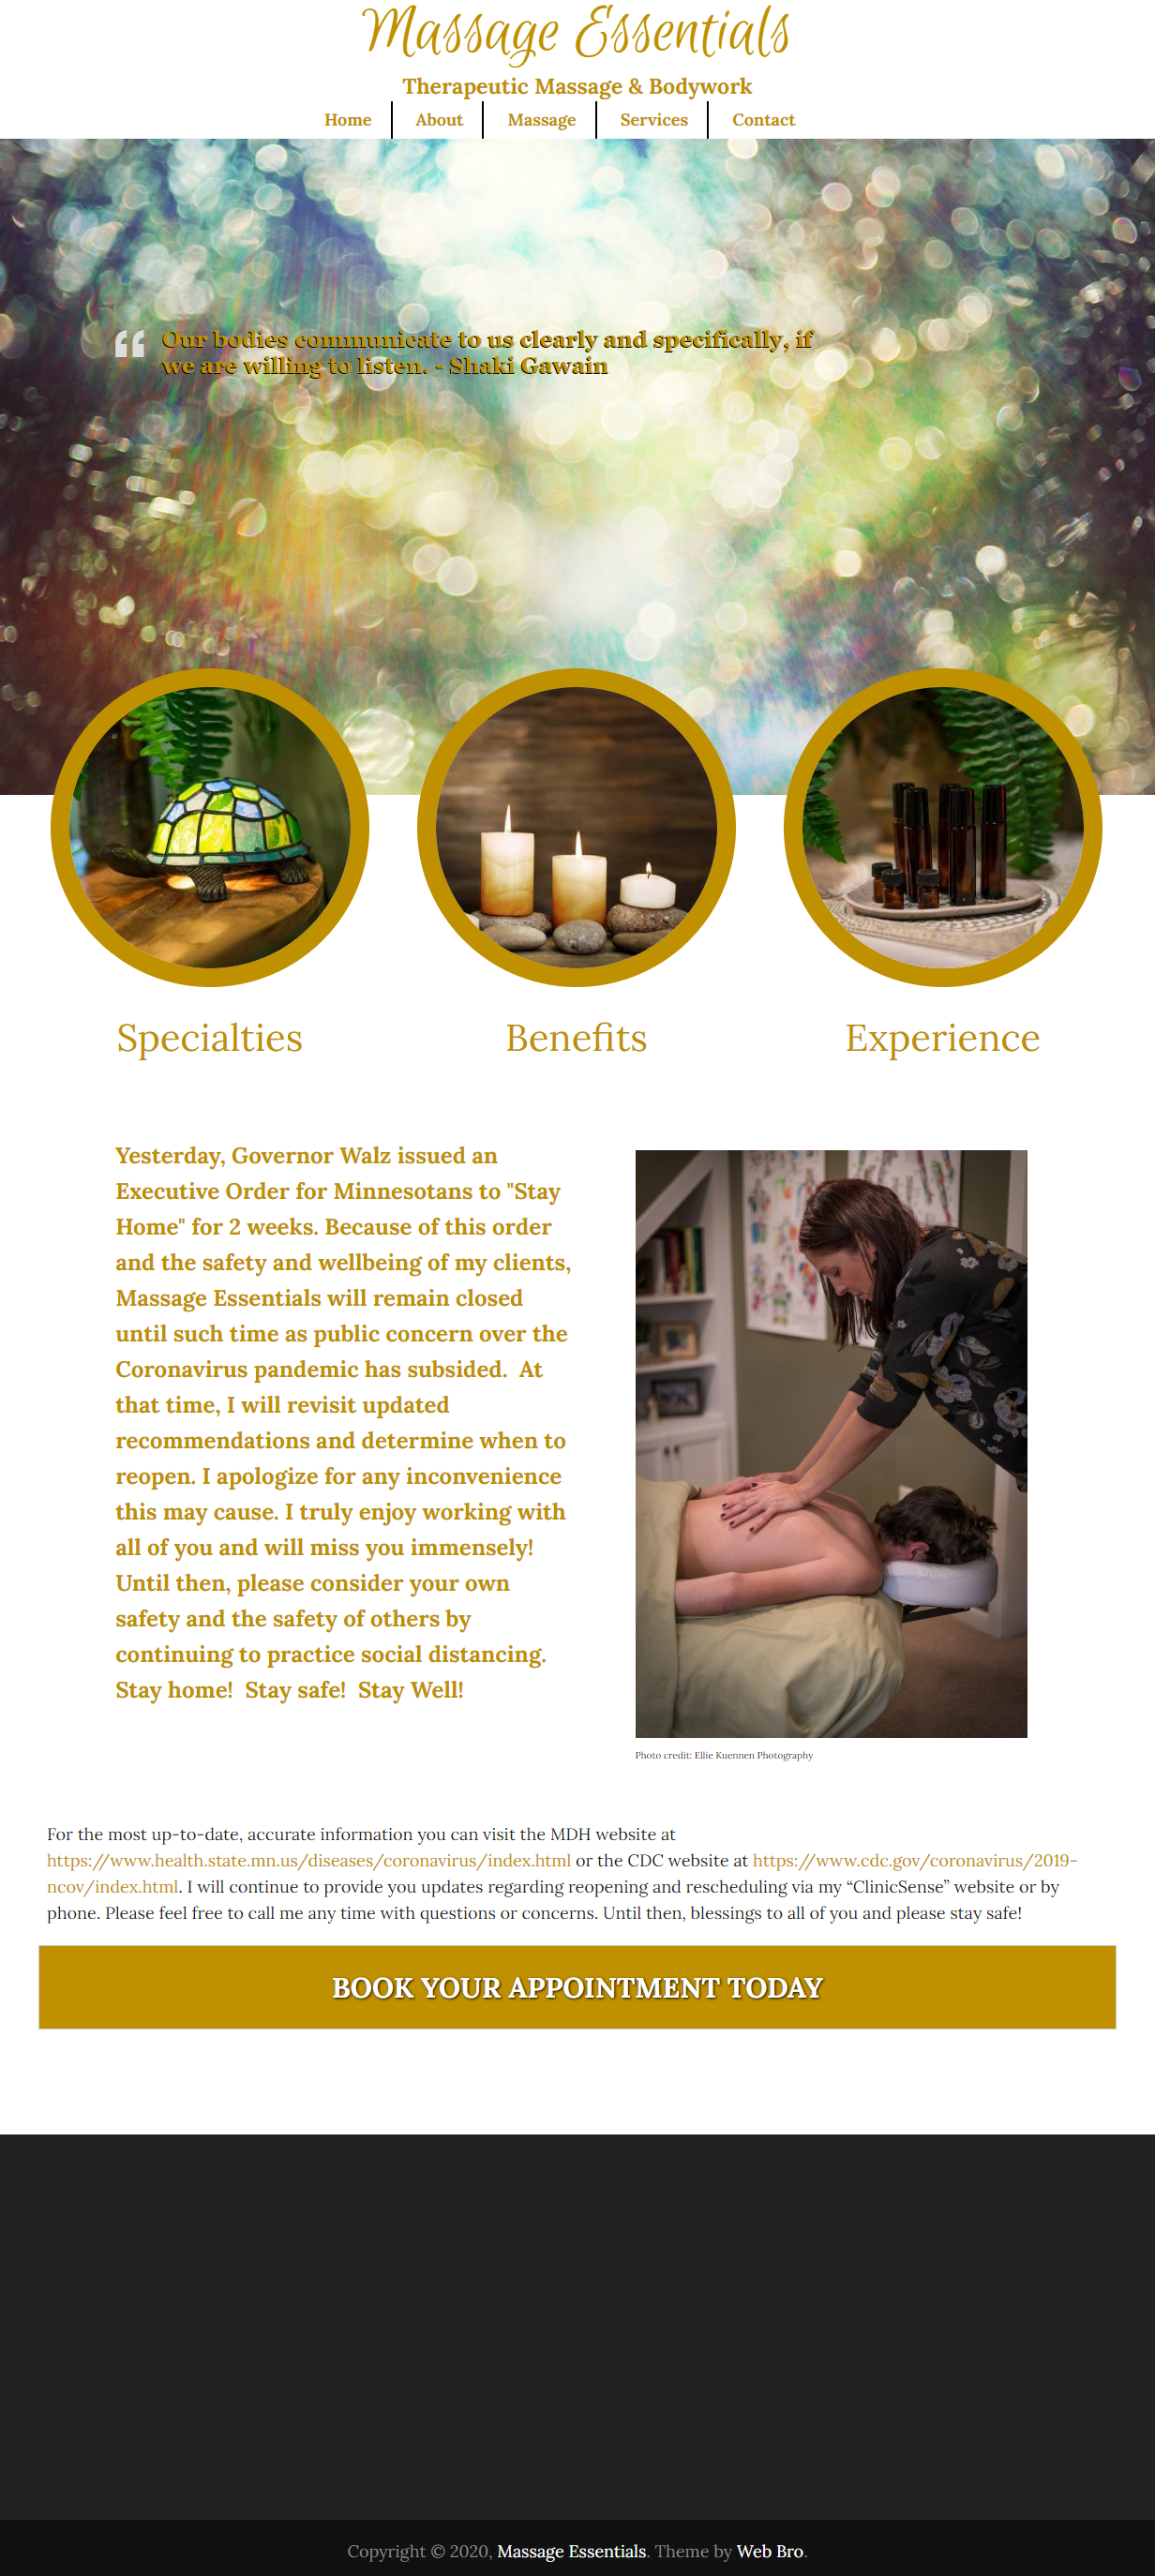 Massage Essentials - Therapeutic Massage & Bodywork